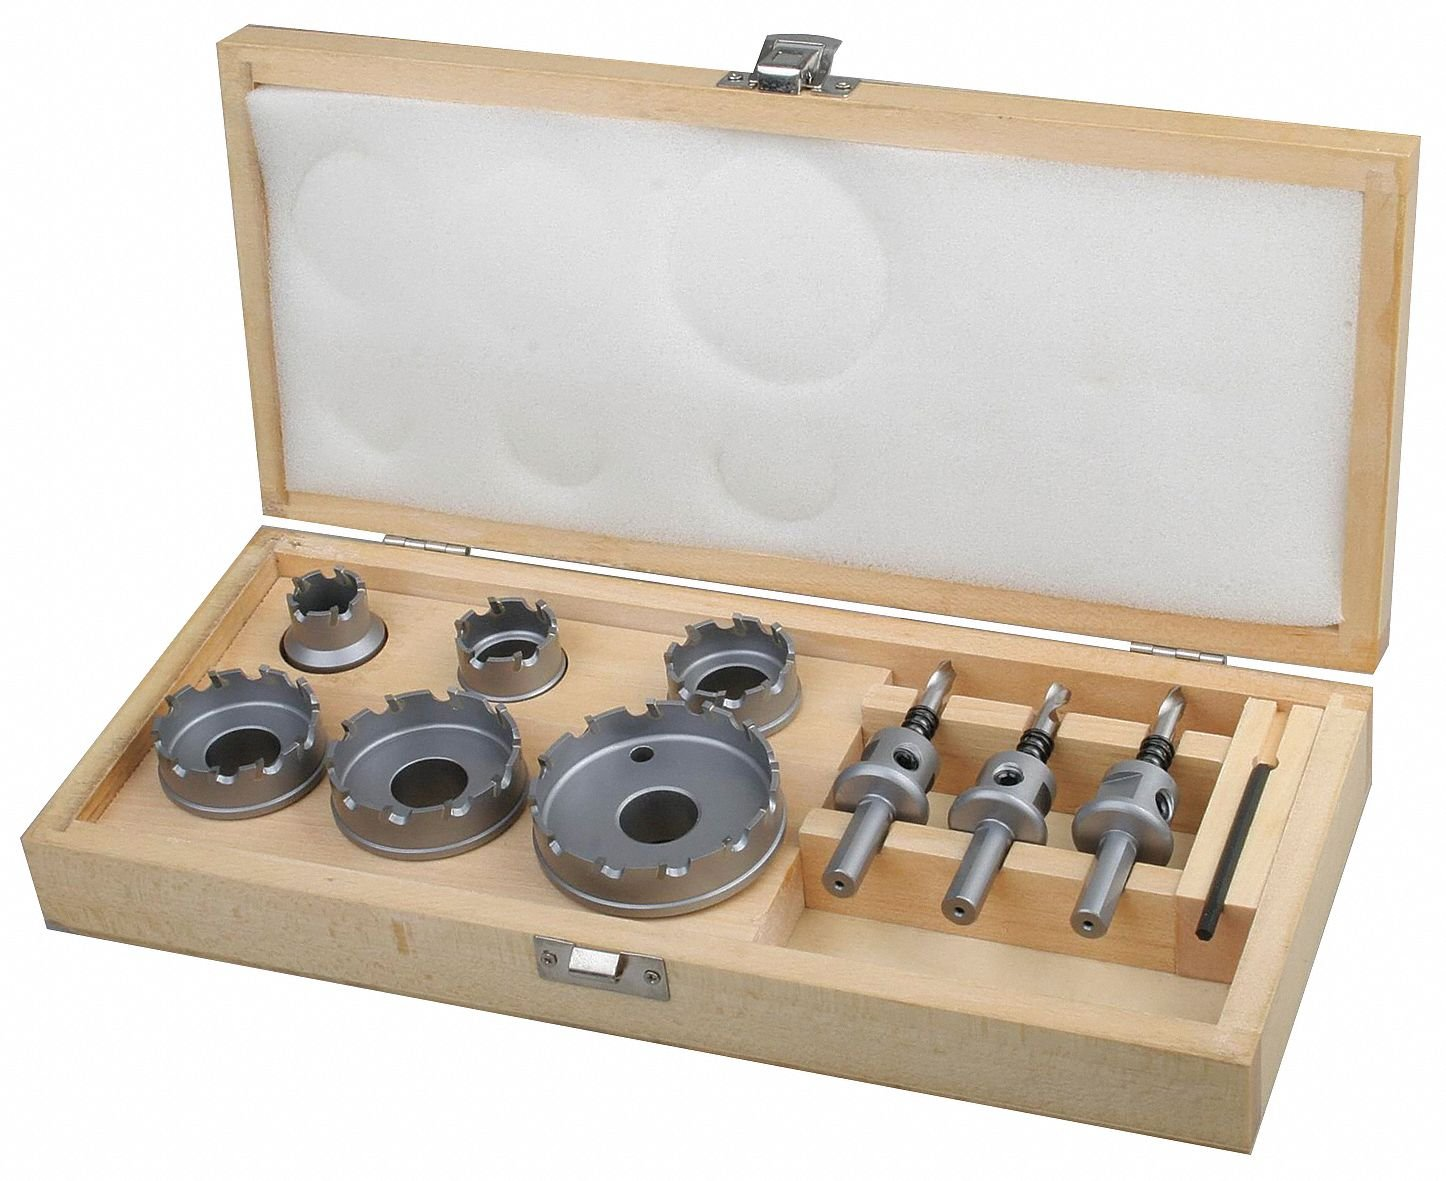 10-Piece Locksmiths Hole Saw Kit for Metal, Range of Saw Sizes: 7/8'' to 2-1/2''